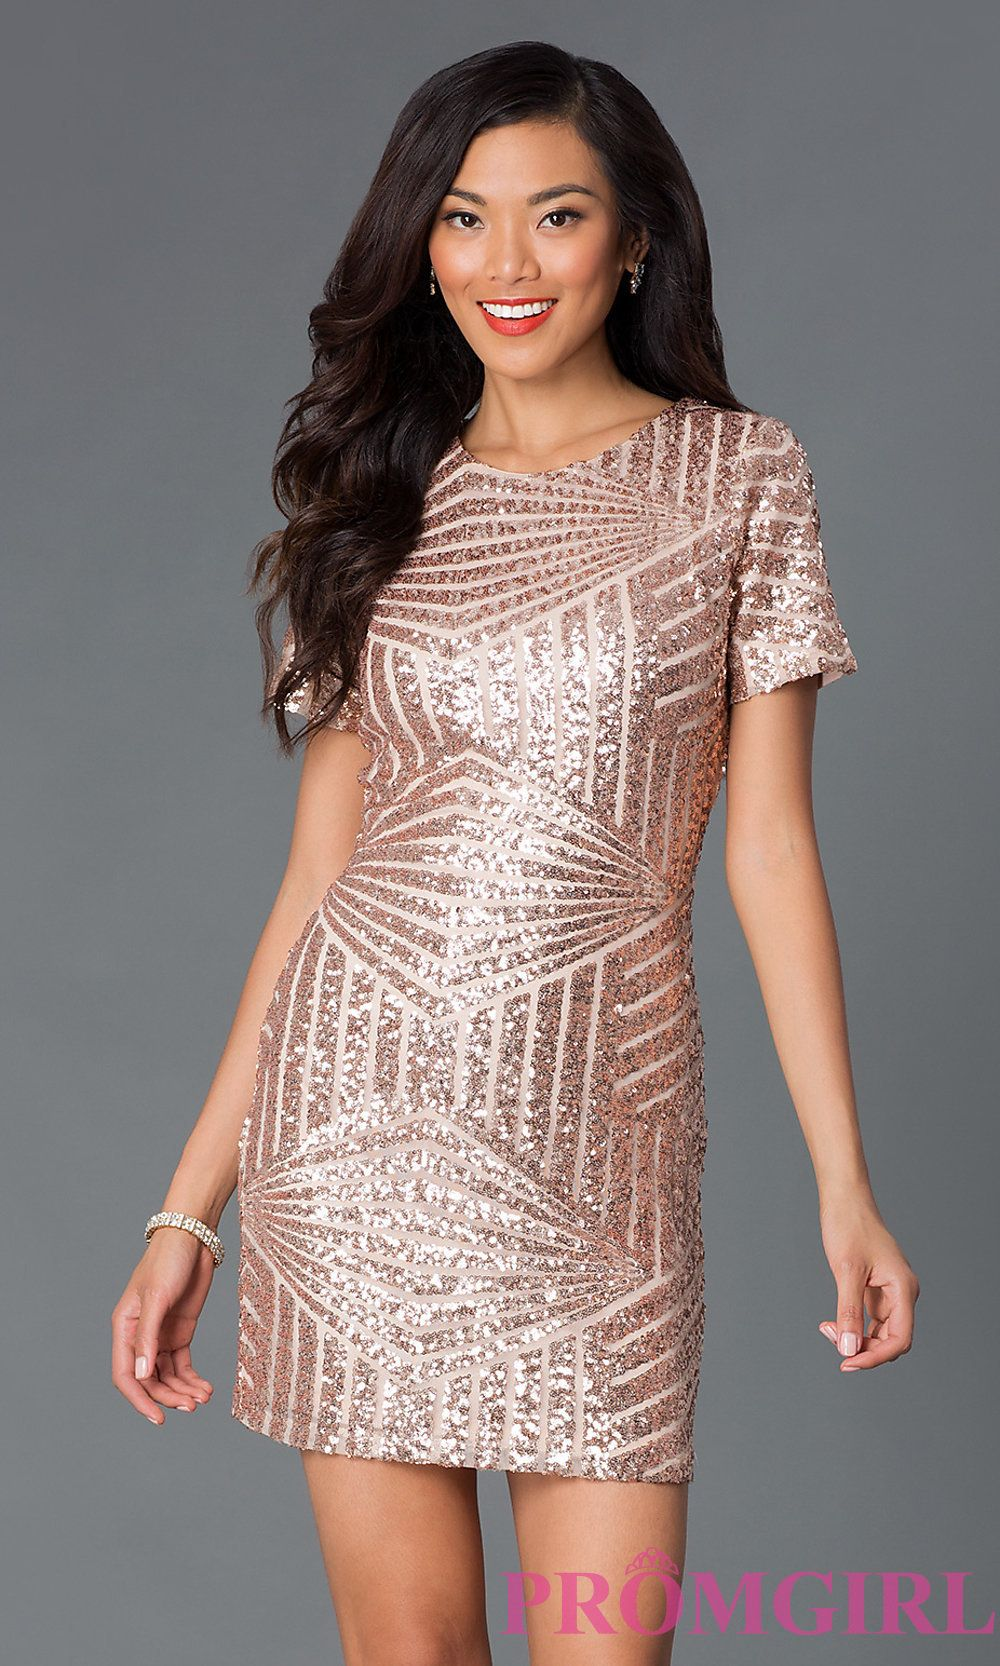 Short Sleeve Sequin Party Dress | More Sequins, Short sleeves and ...